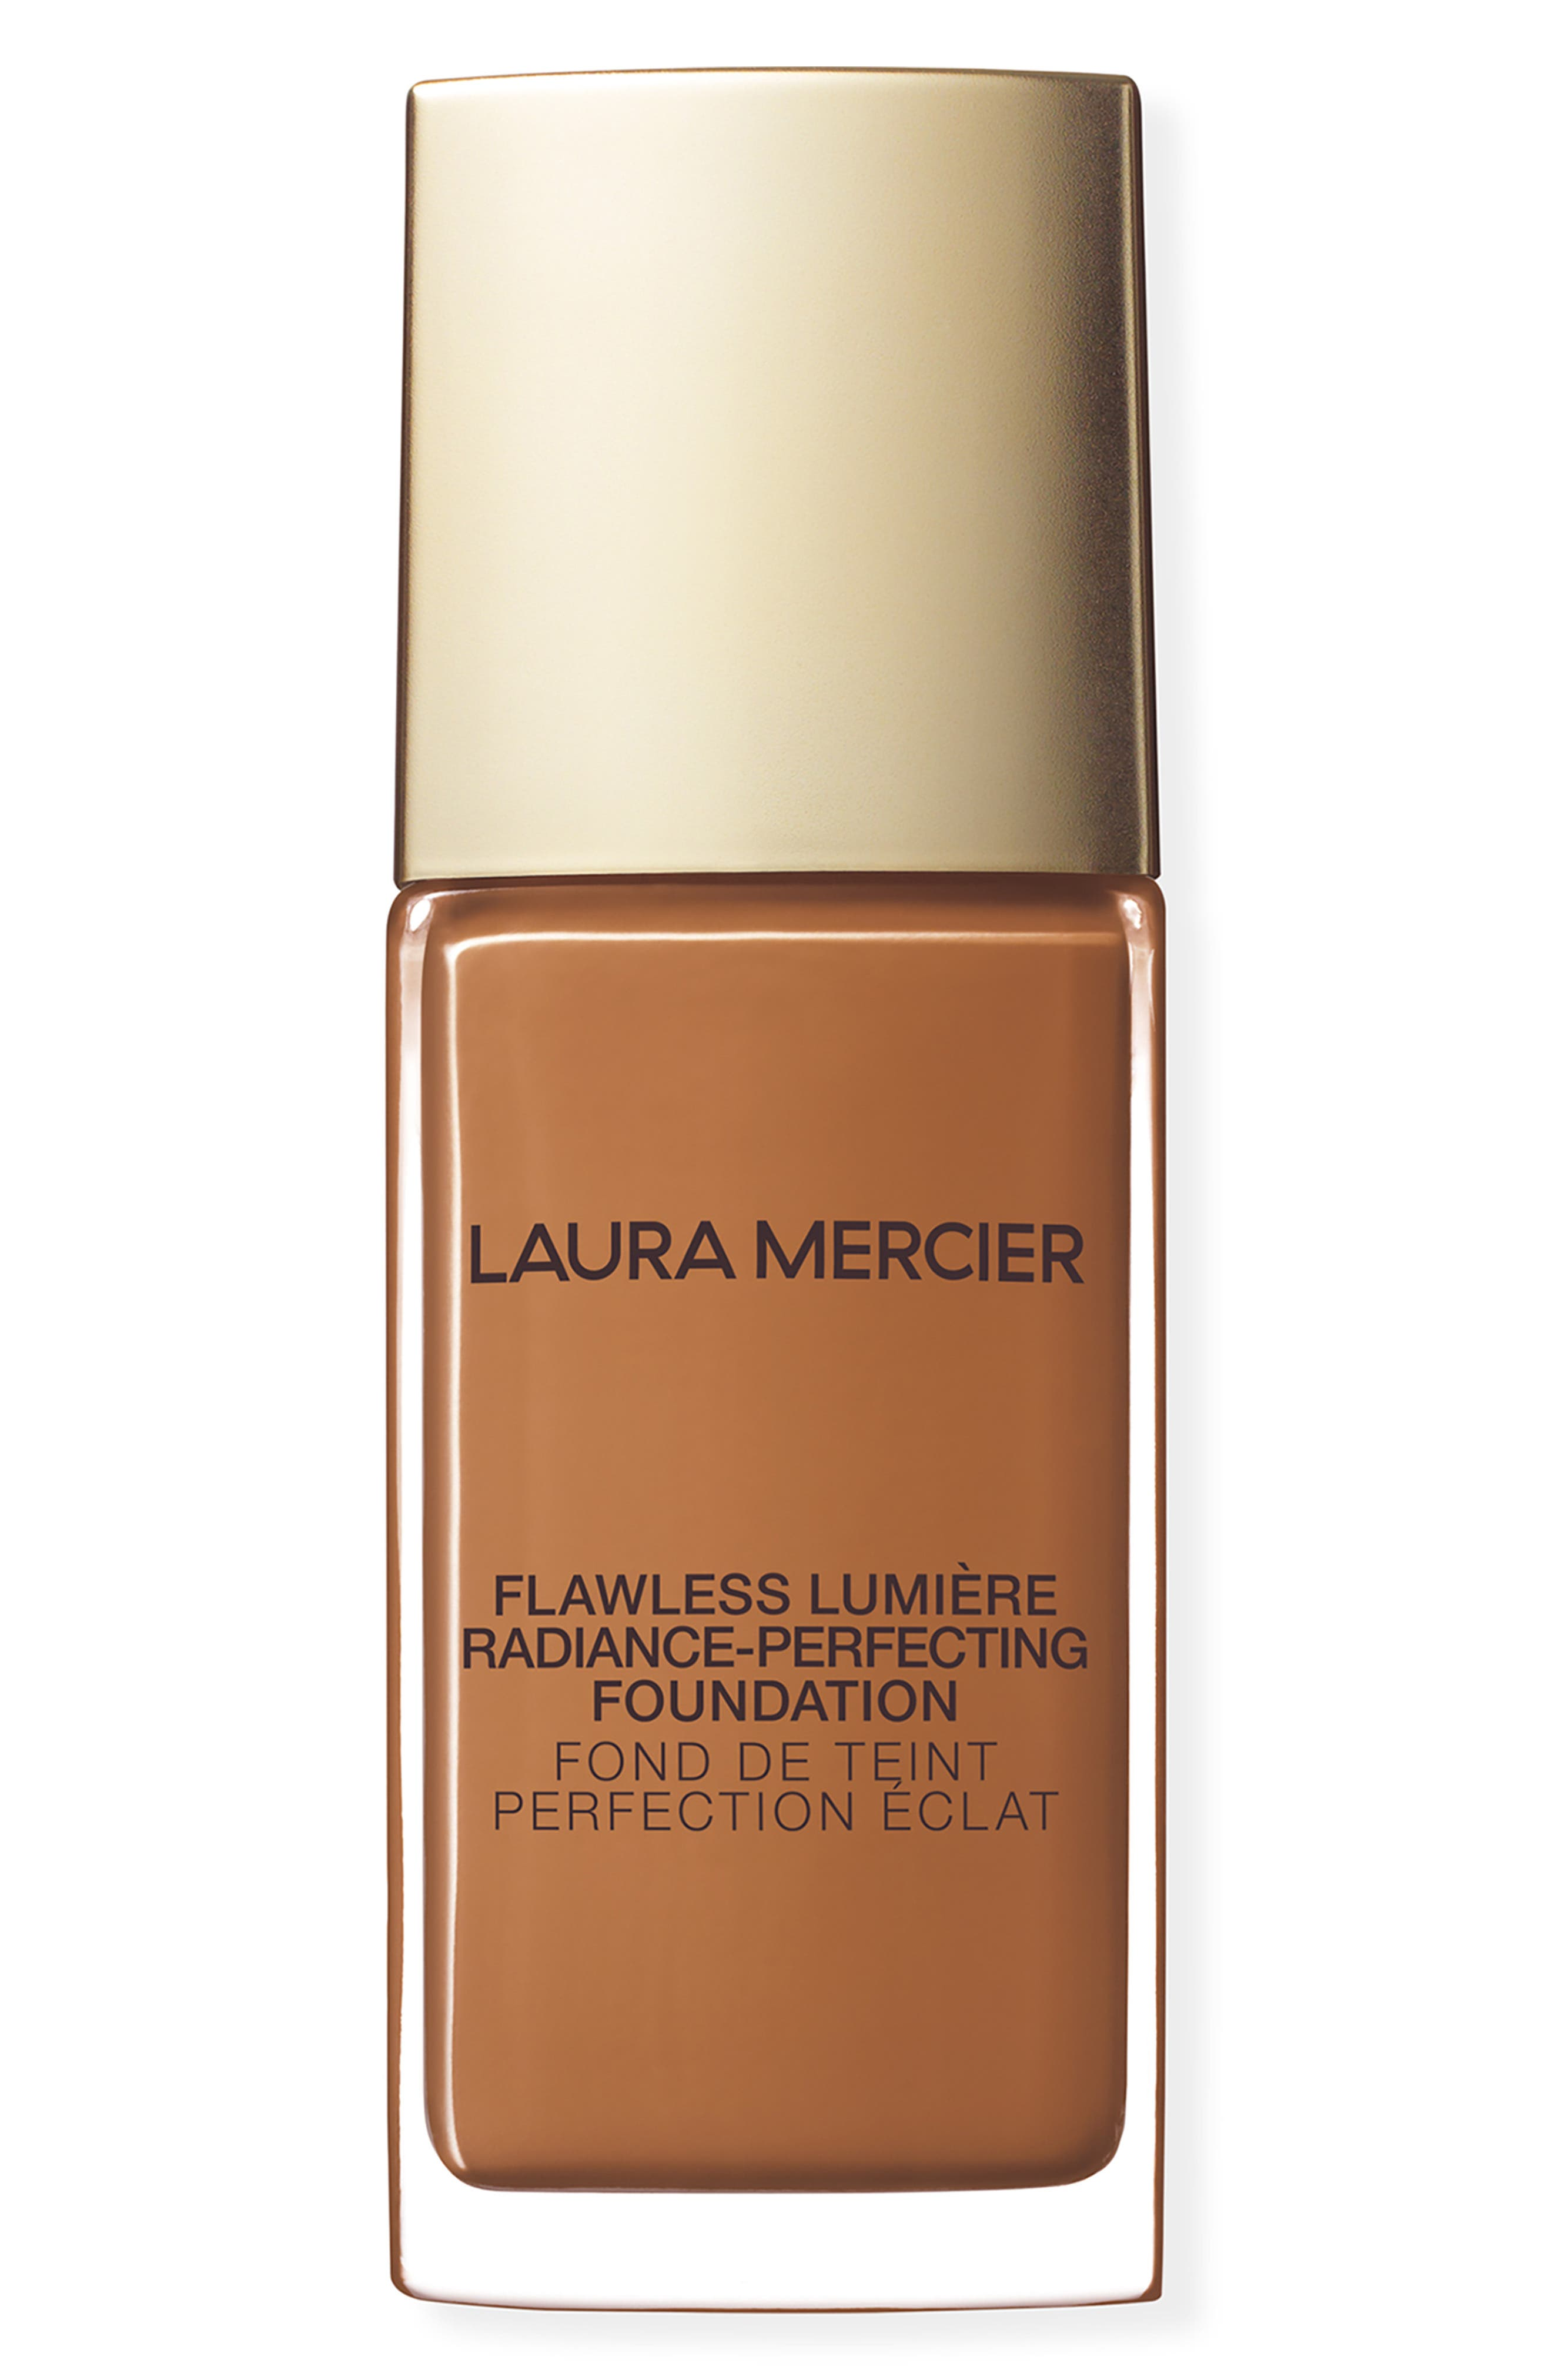 Flawless Lumière Radiance-Perfecting Foundation,                         Main,                         color, 5C1 NUTMEG